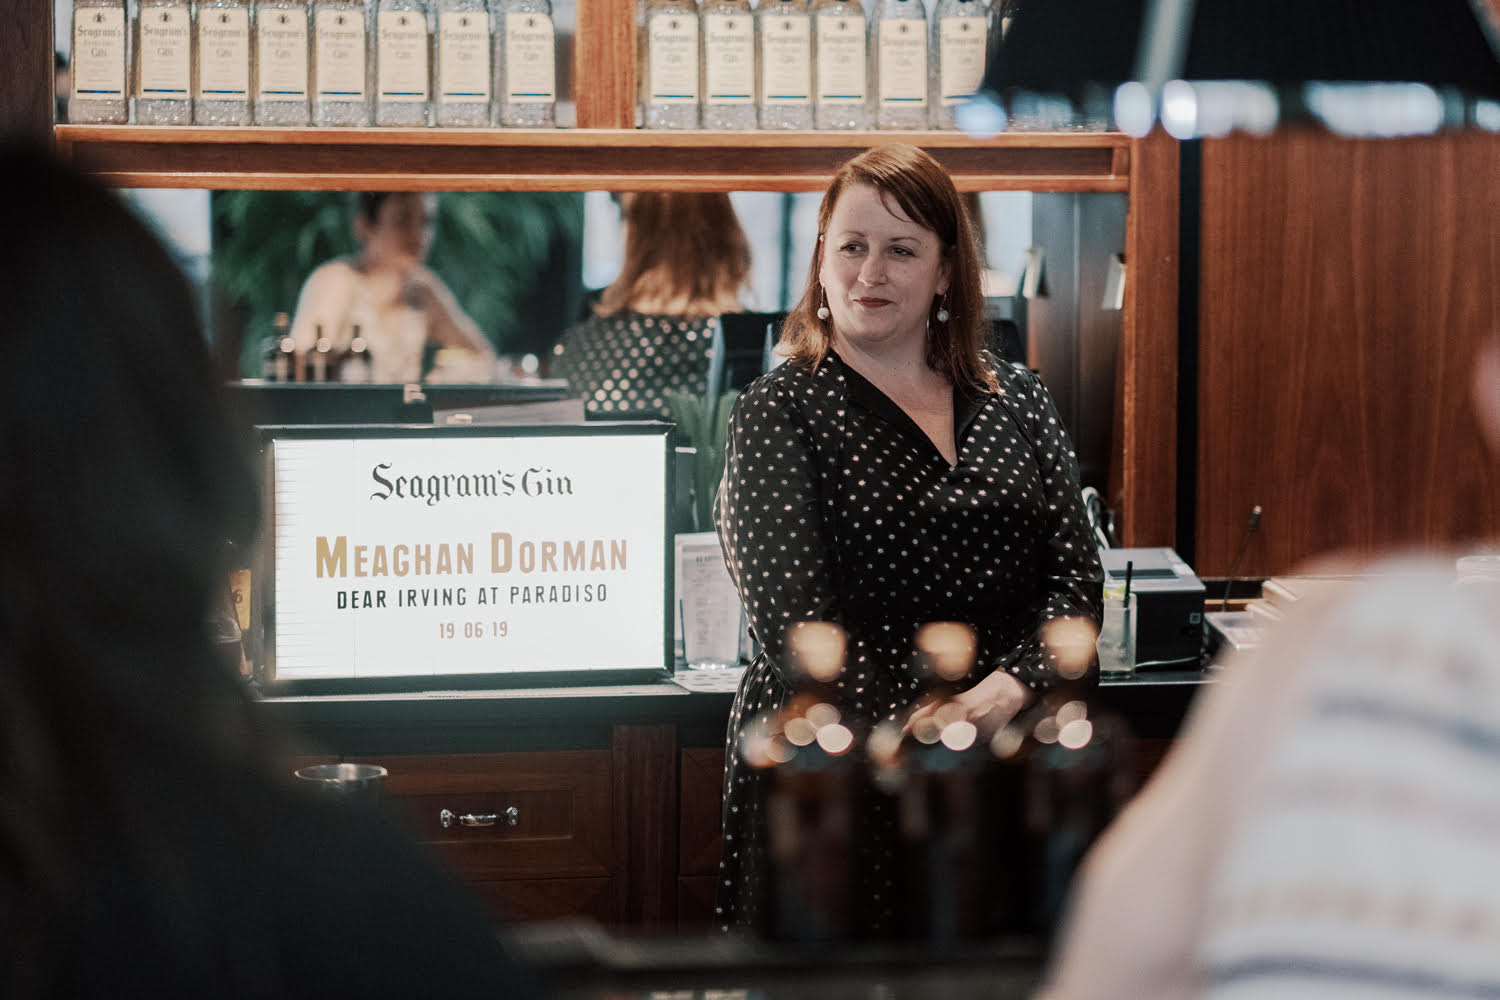 Seagram's New York Hotel